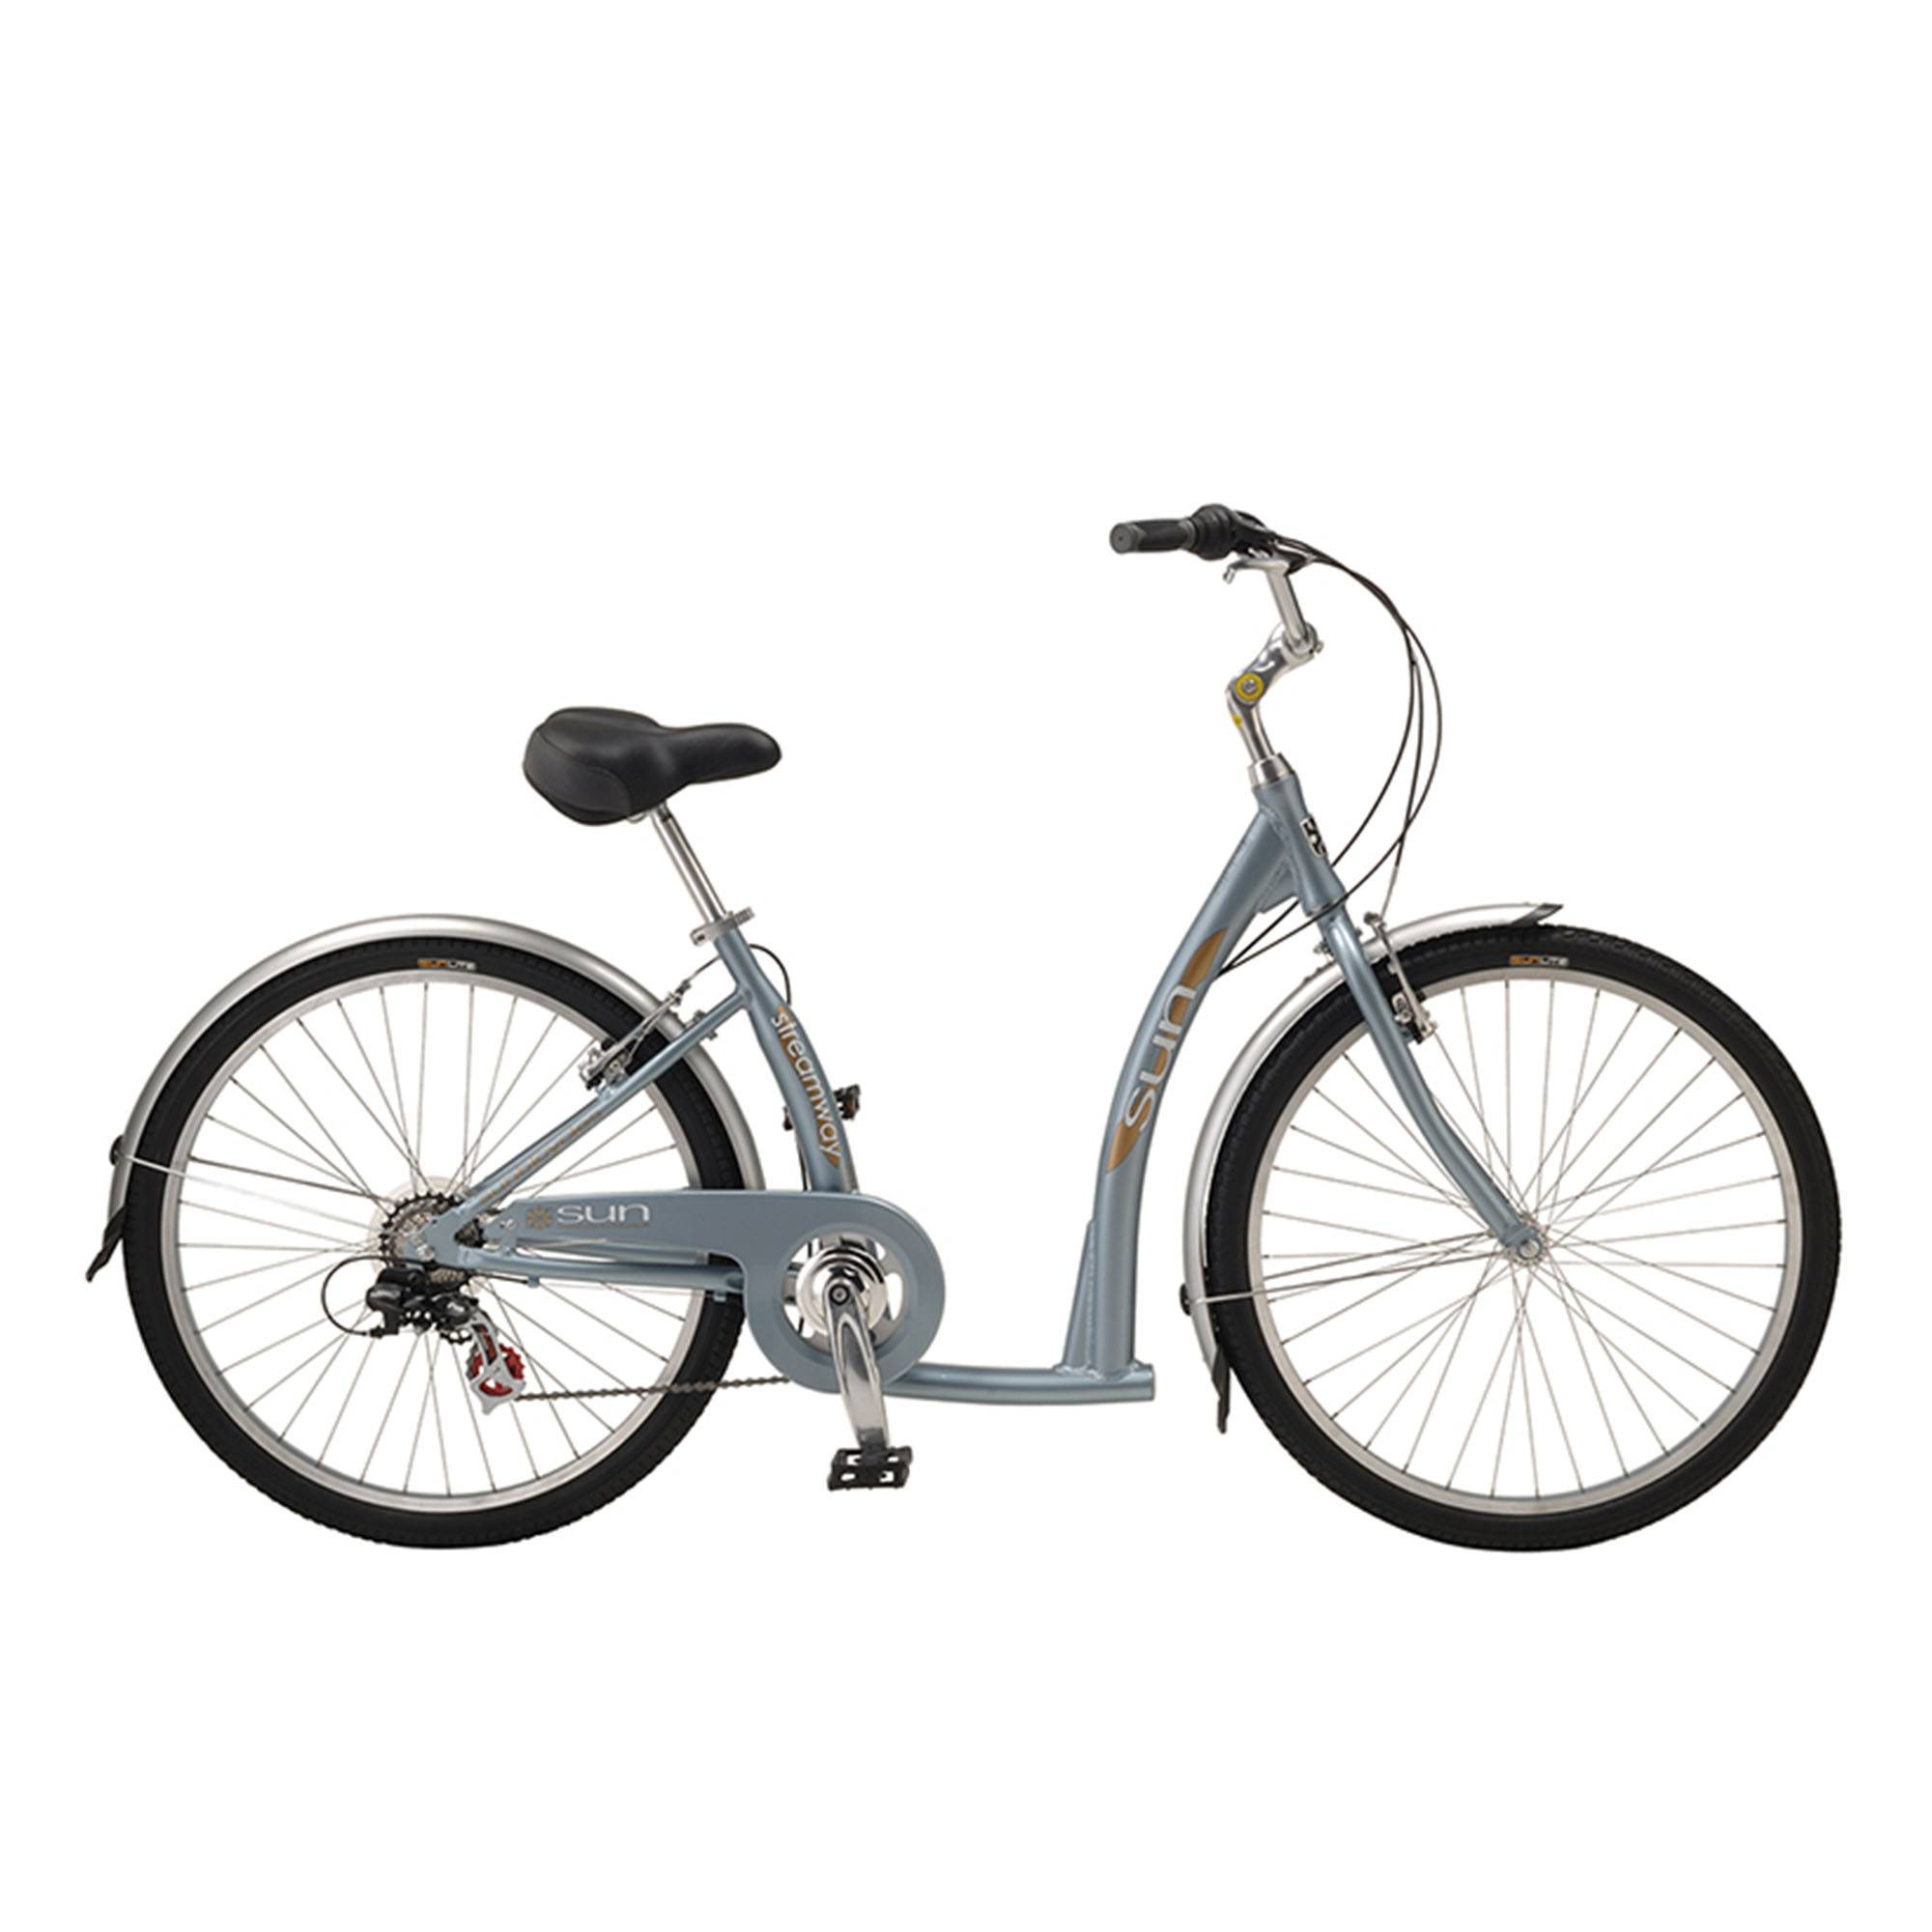 Sun Bicycles Streamway 7 Comfort Bike '20  - Pacific Blue - Size: One Size